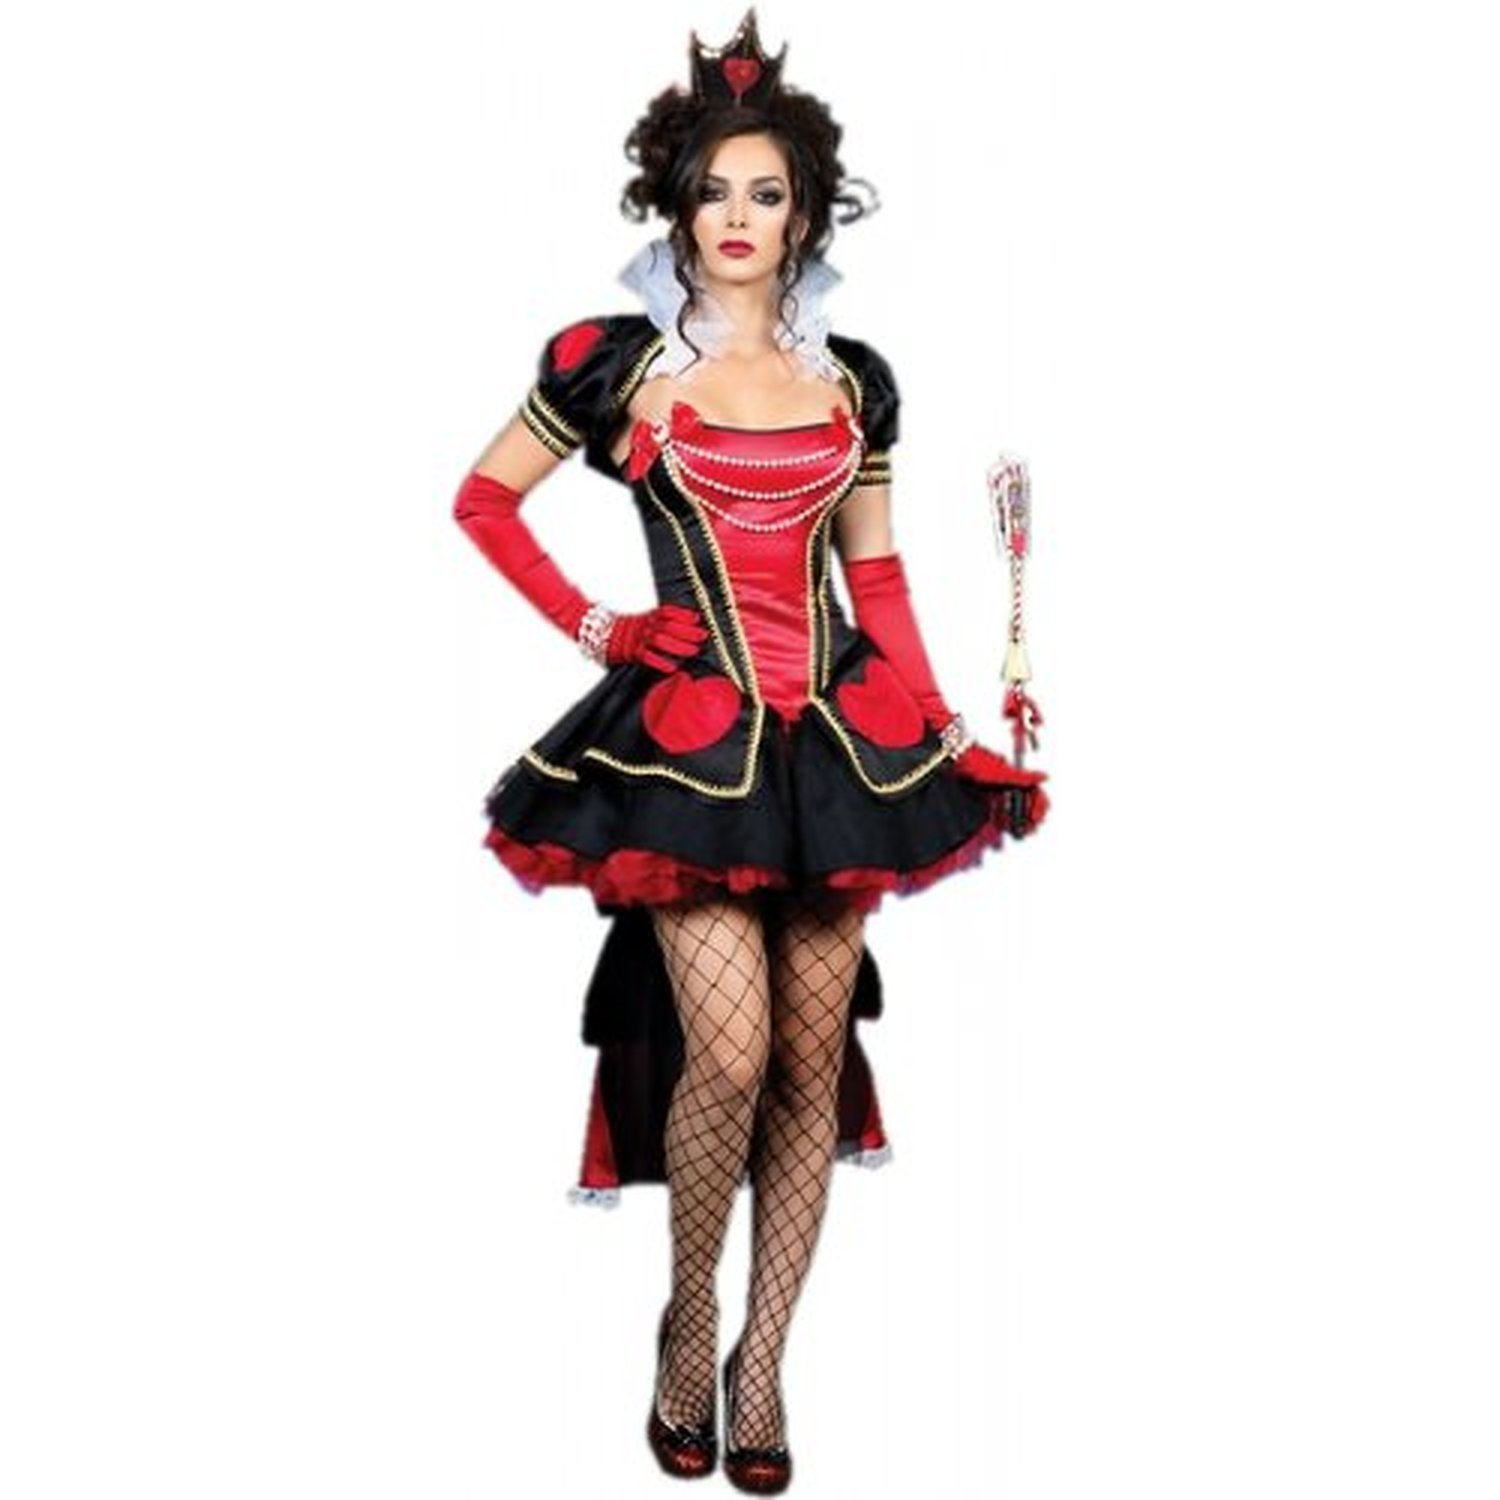 Limited Edition Deluxe Red Queen of Hearts Ultimate Sexy Costume - DeluxeAdultCostumes.com